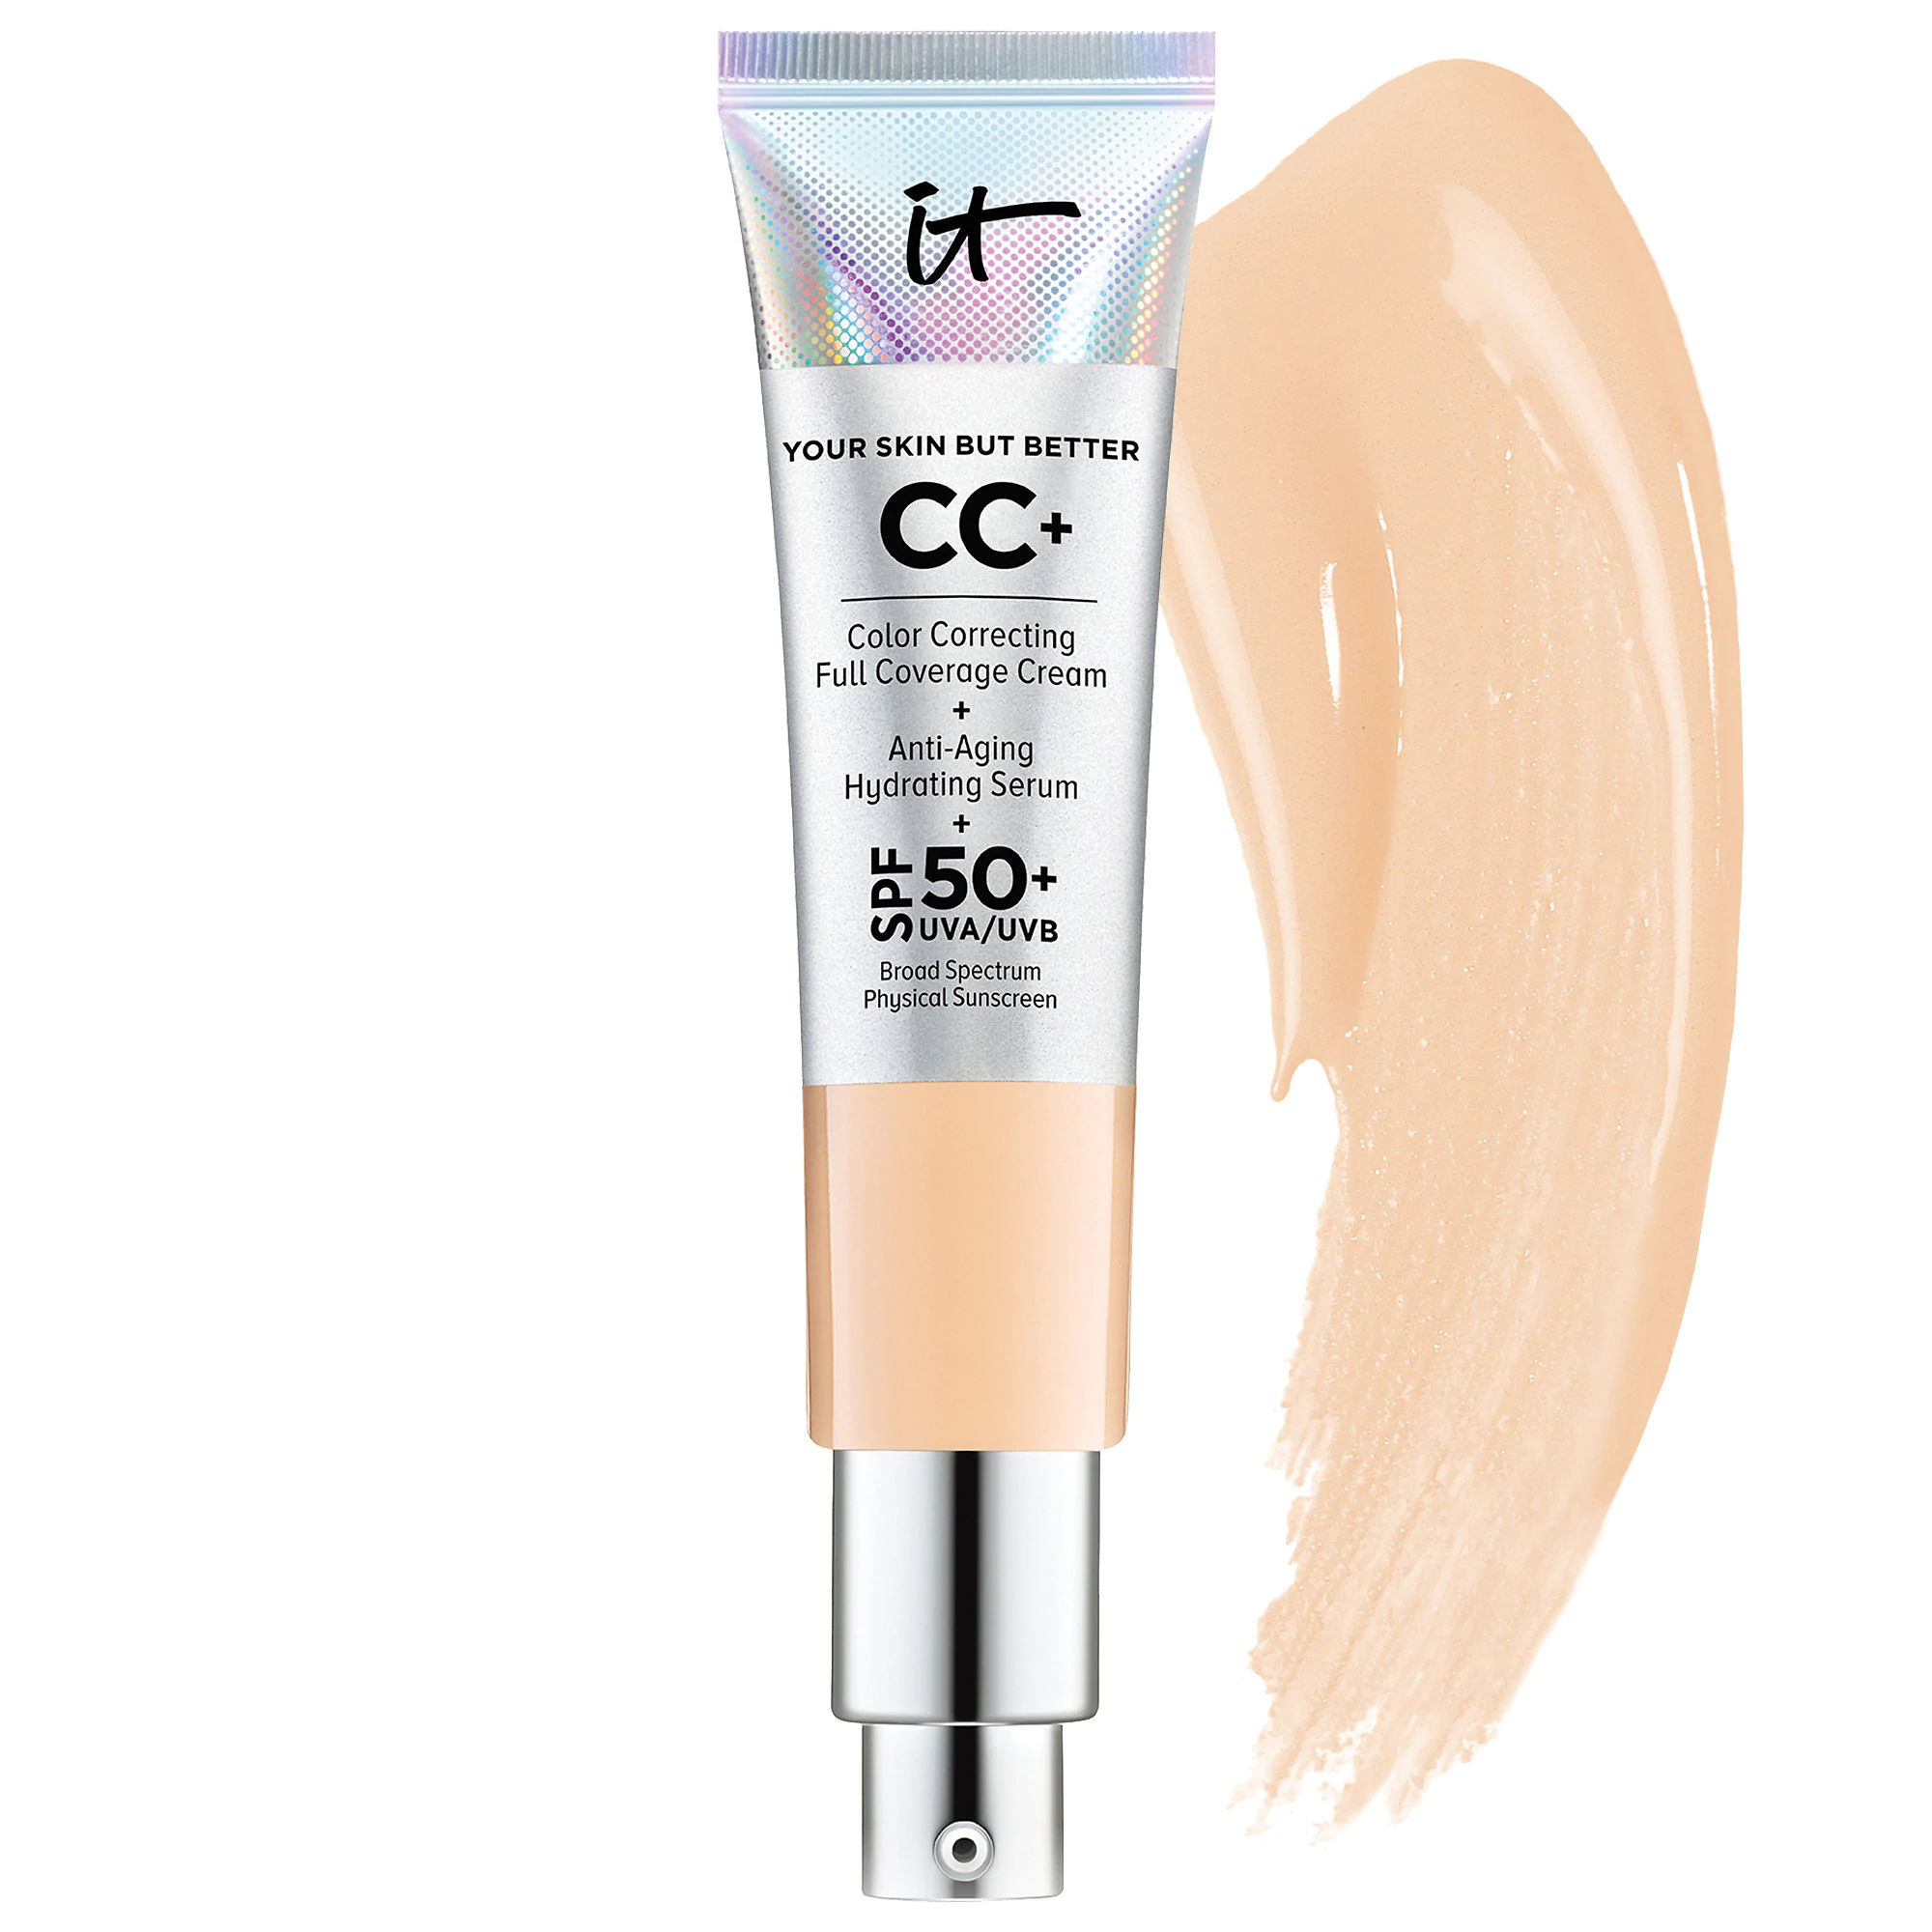 IT Cosmetics-Cc+ Cream With Spf 50+